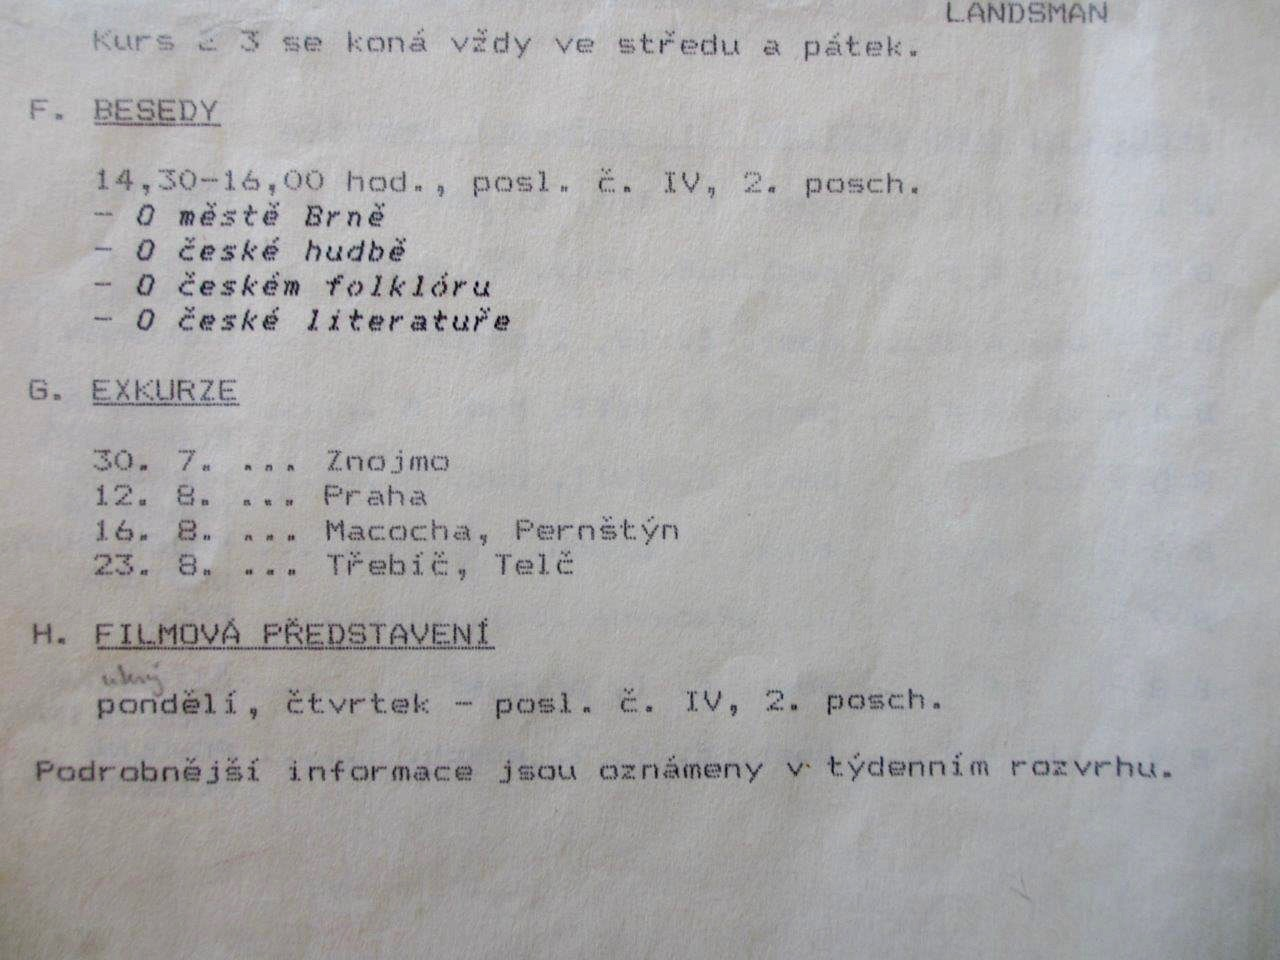 The summer school program Mark Baker and Katrin took part in during the summer of 1988 in Brno, Czech Republic.